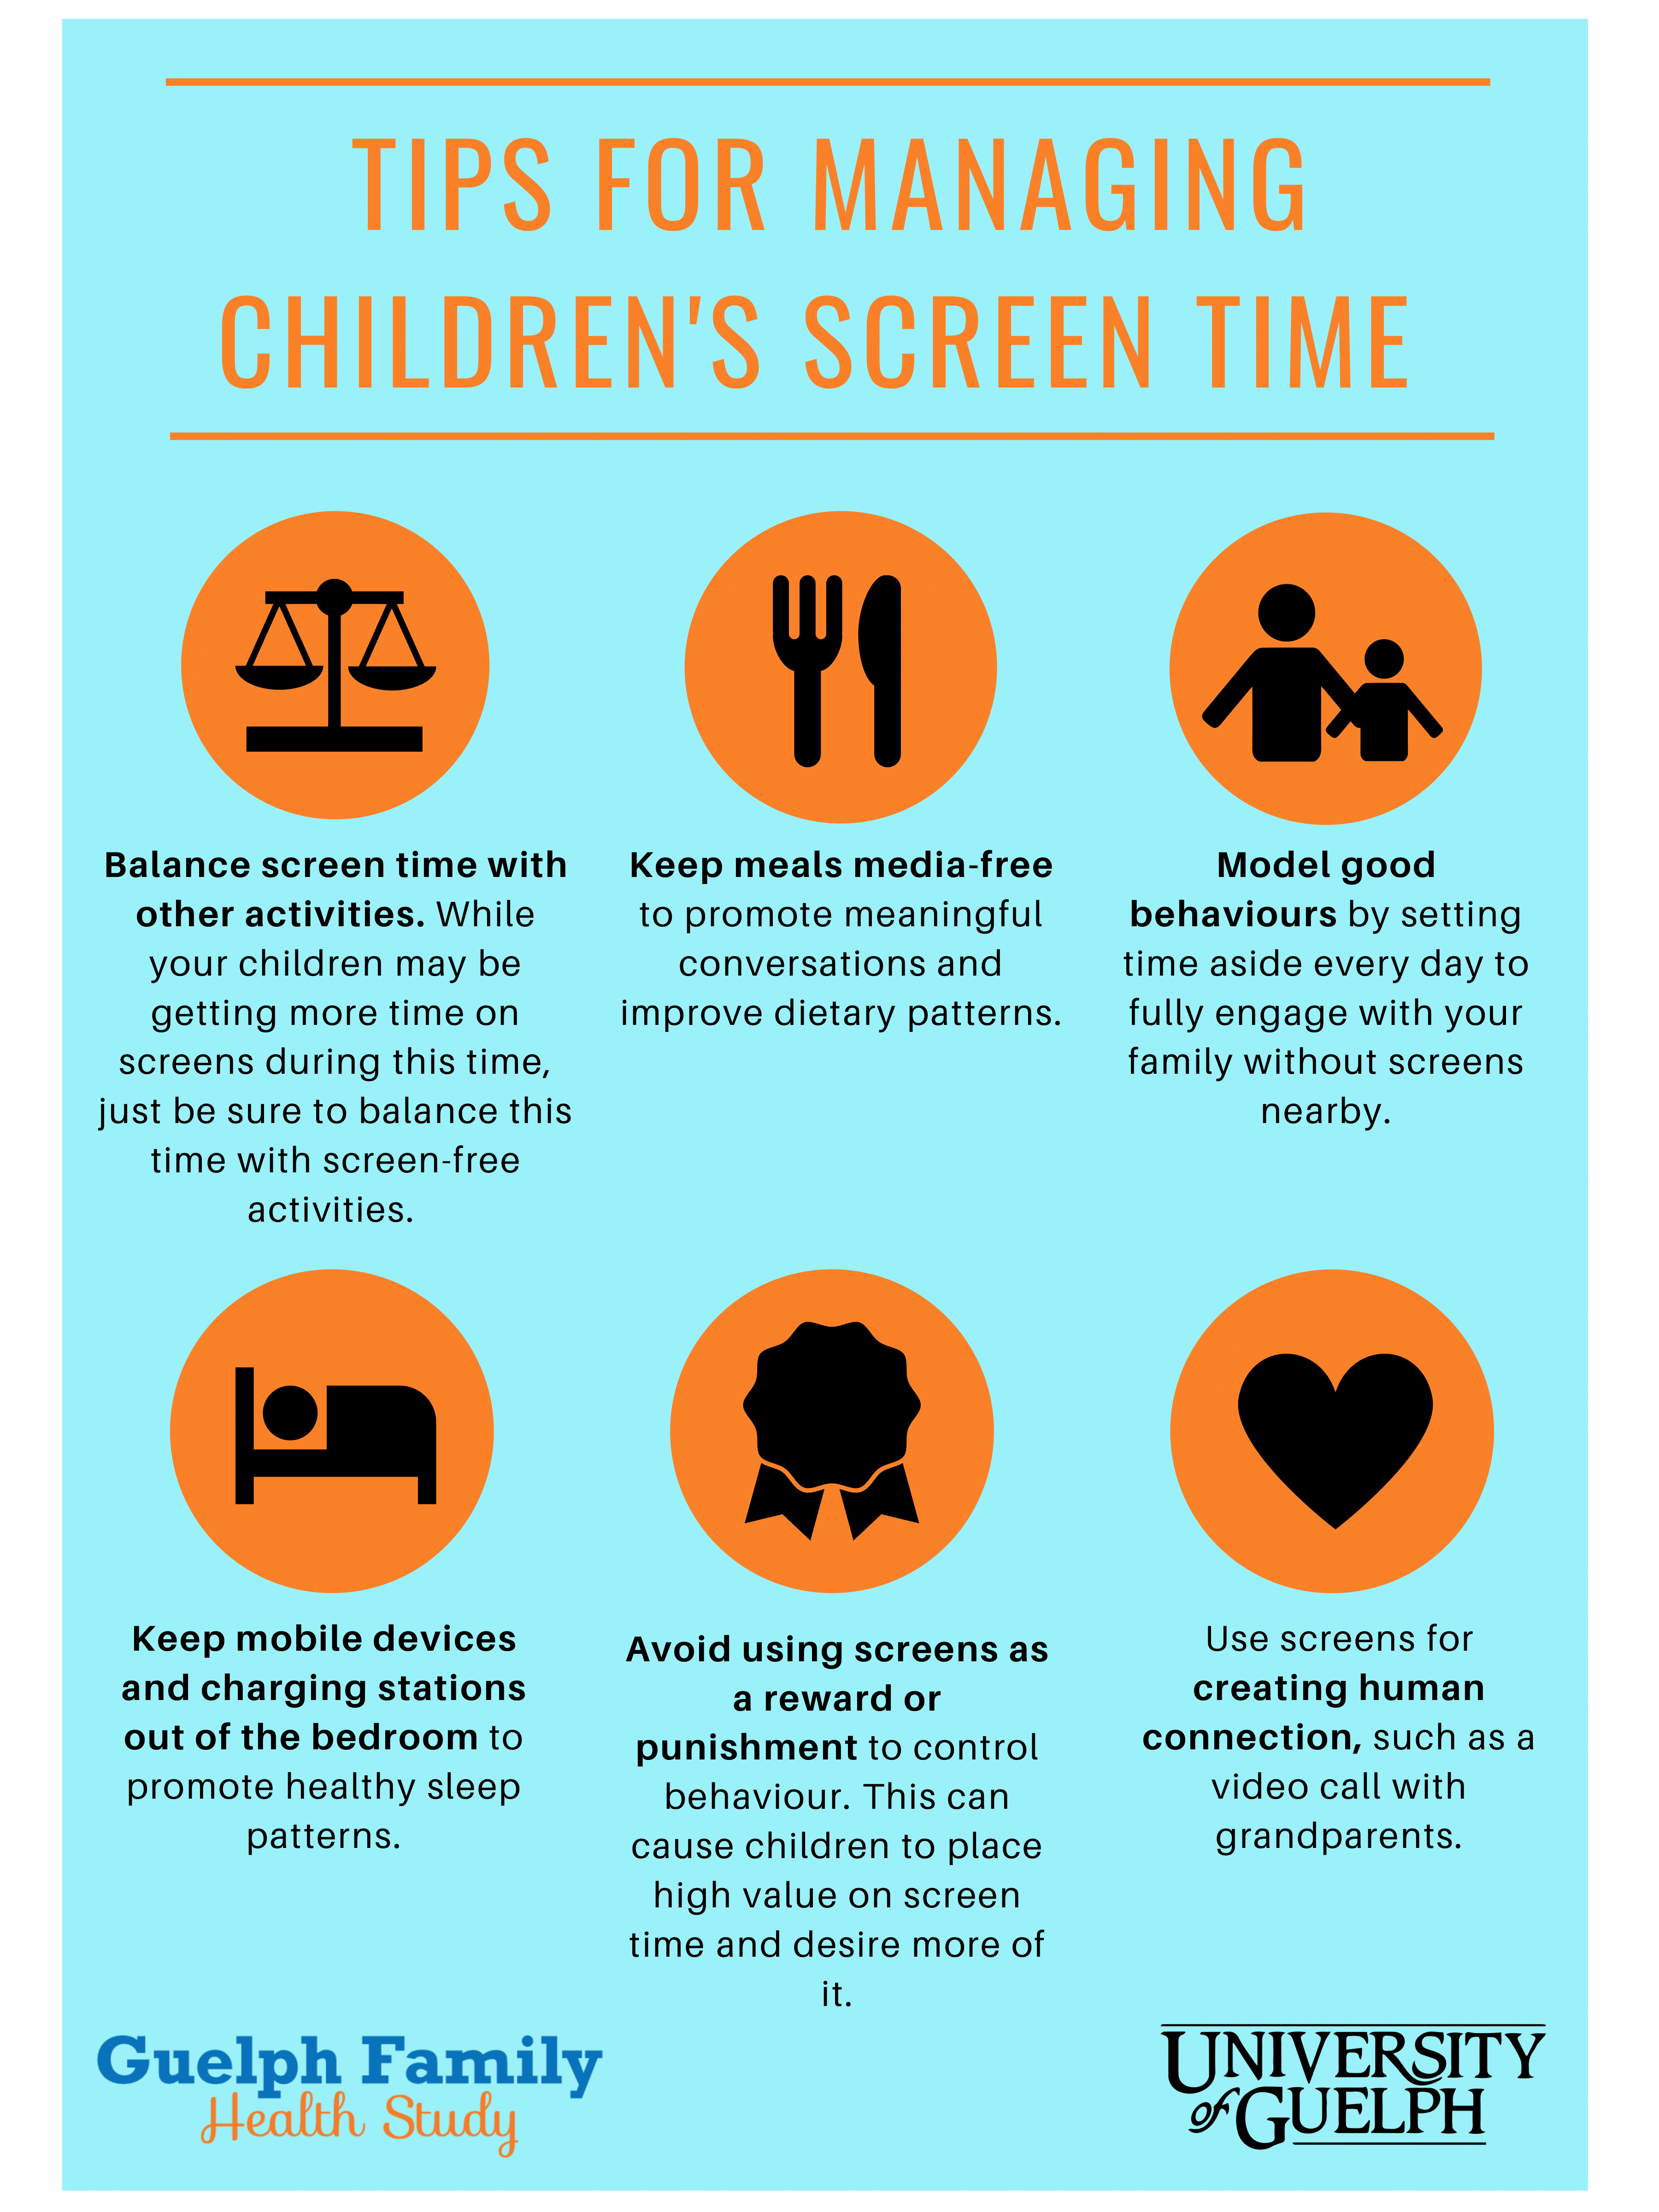 Tips for managing children's screen time